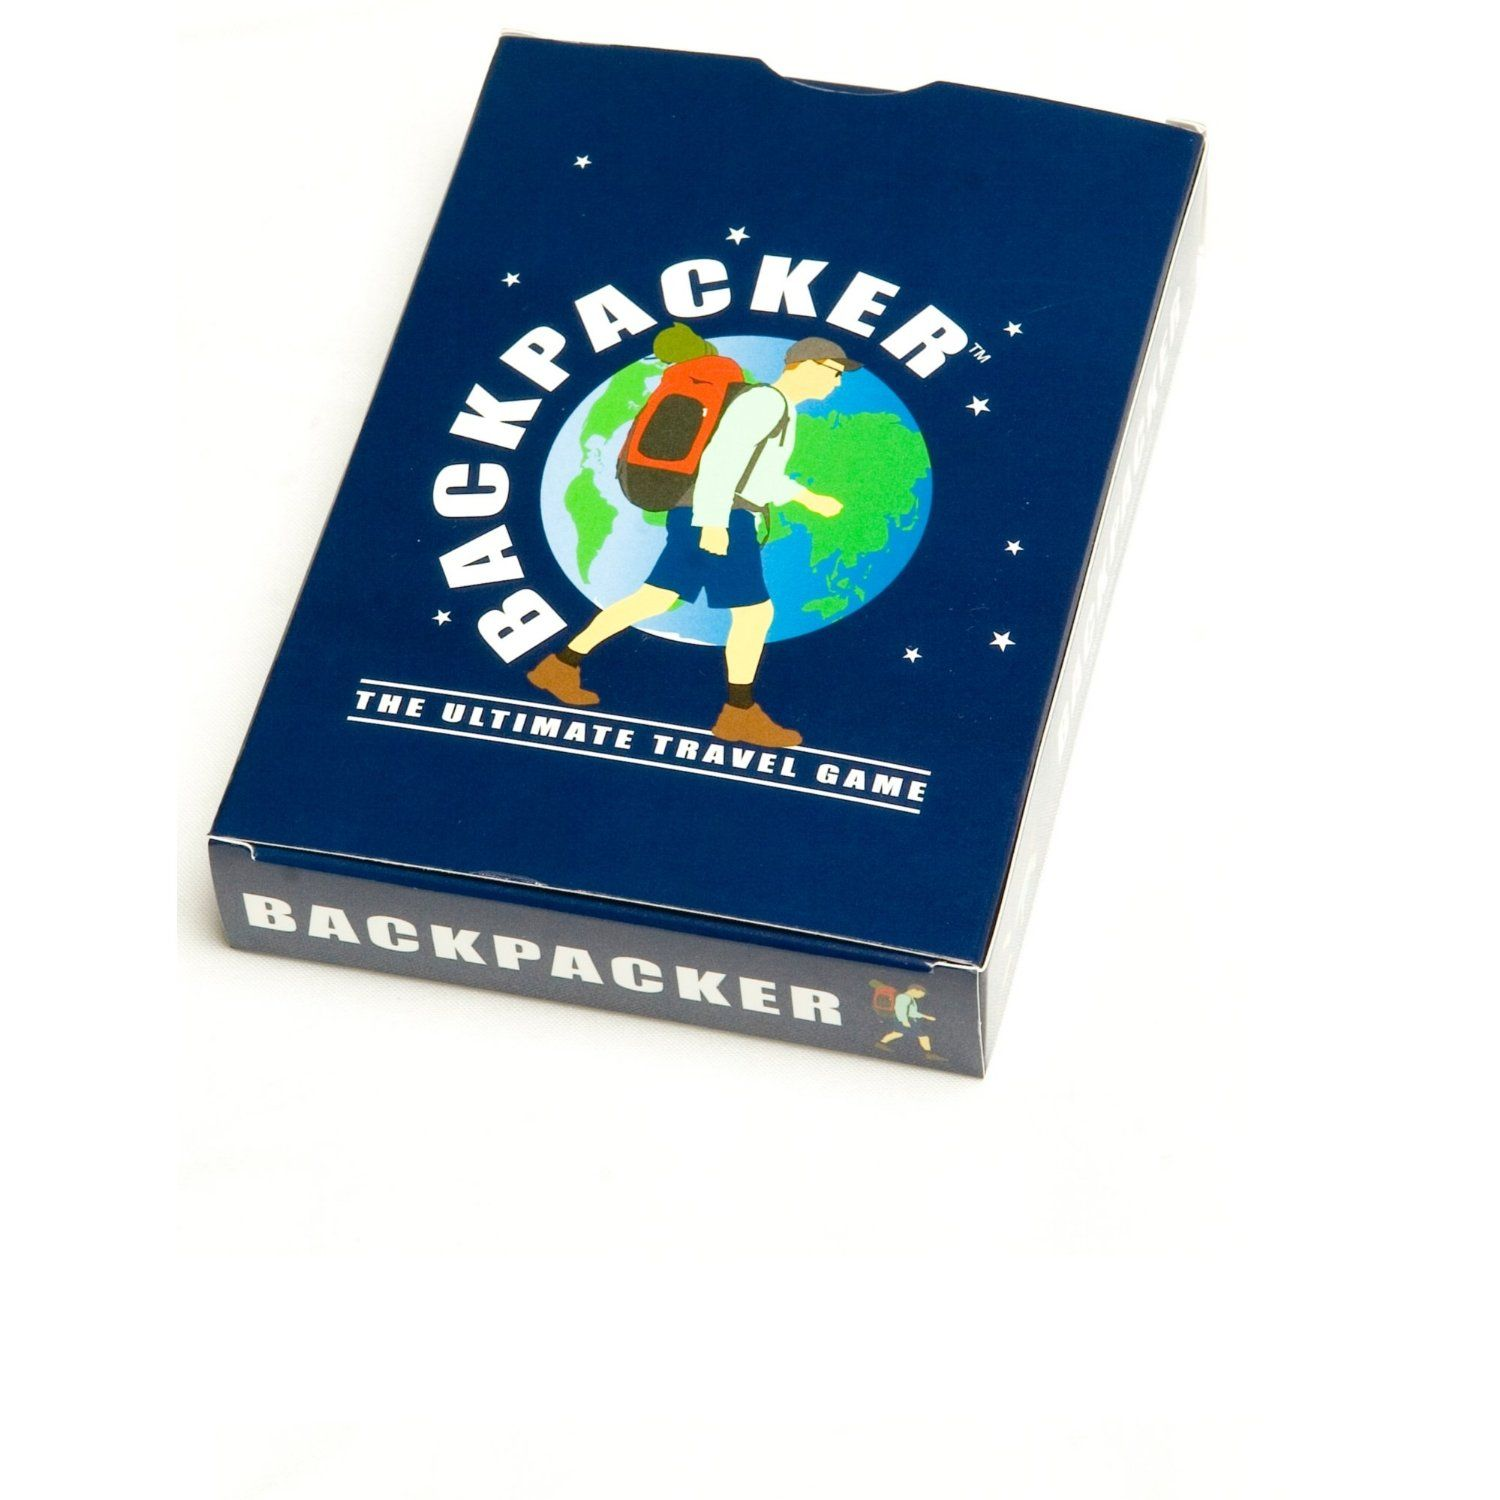 """Keep entertained on your gap year travels with """"Backpacker - The Ultimate Travel Game"""". Described as """"fun, exciting, fast changing and very addictive""""!  http://www.travelpresents.co.uk/#!gap-year-gifts/cdbz"""